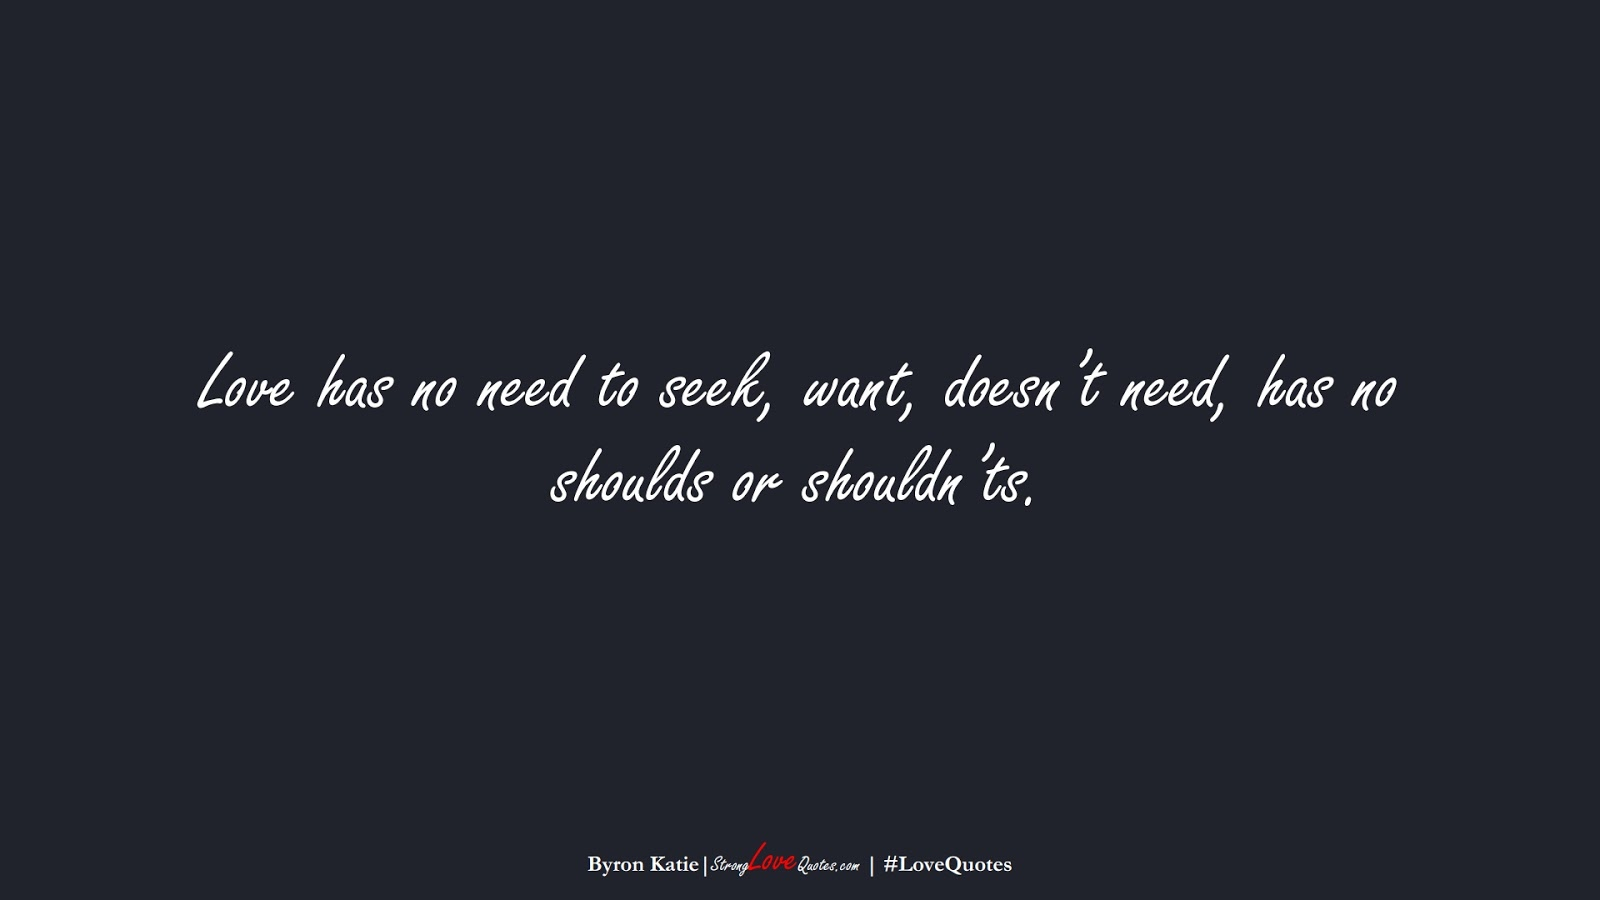 Love has no need to seek, want, doesn't need, has no shoulds or shouldn'ts. (Byron Katie);  #LoveQuotes